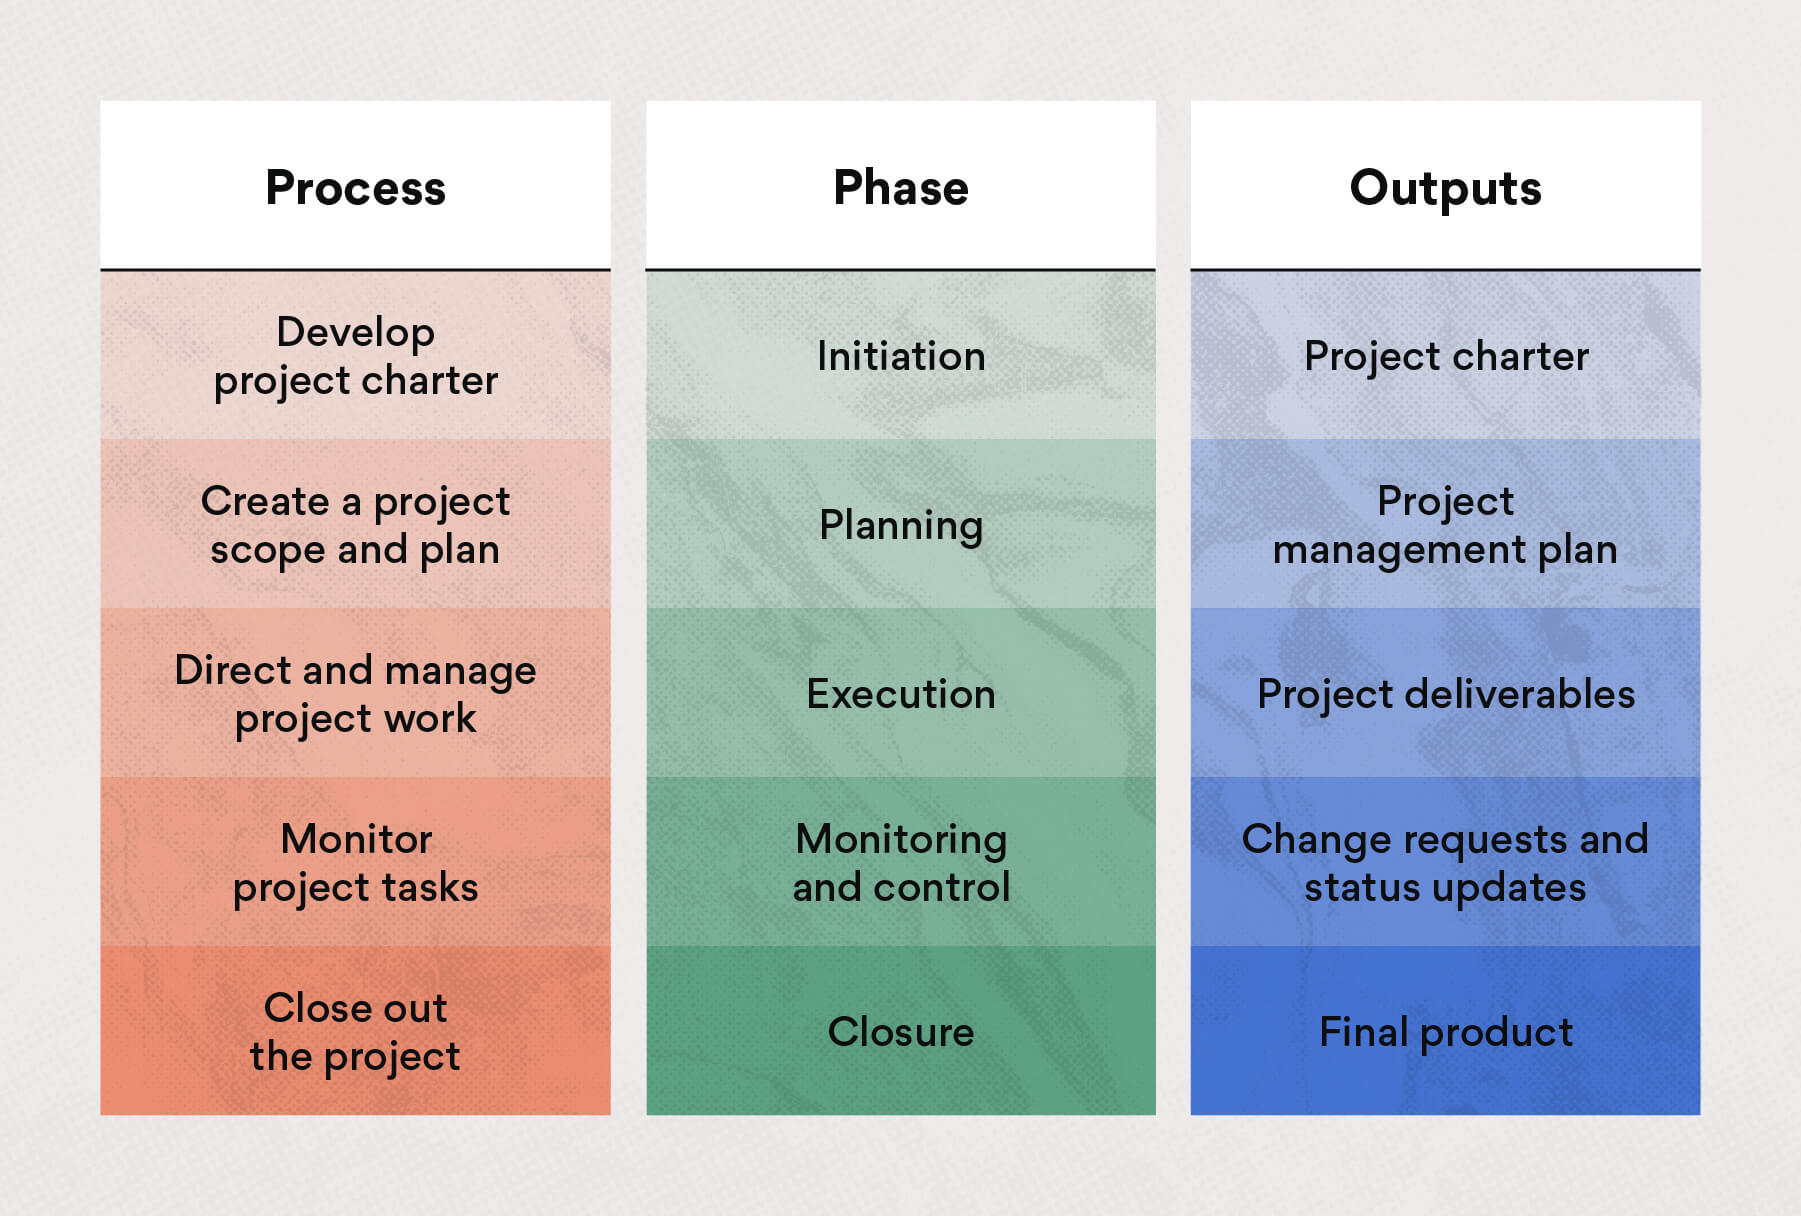 Have a project manager oversee integrated project management